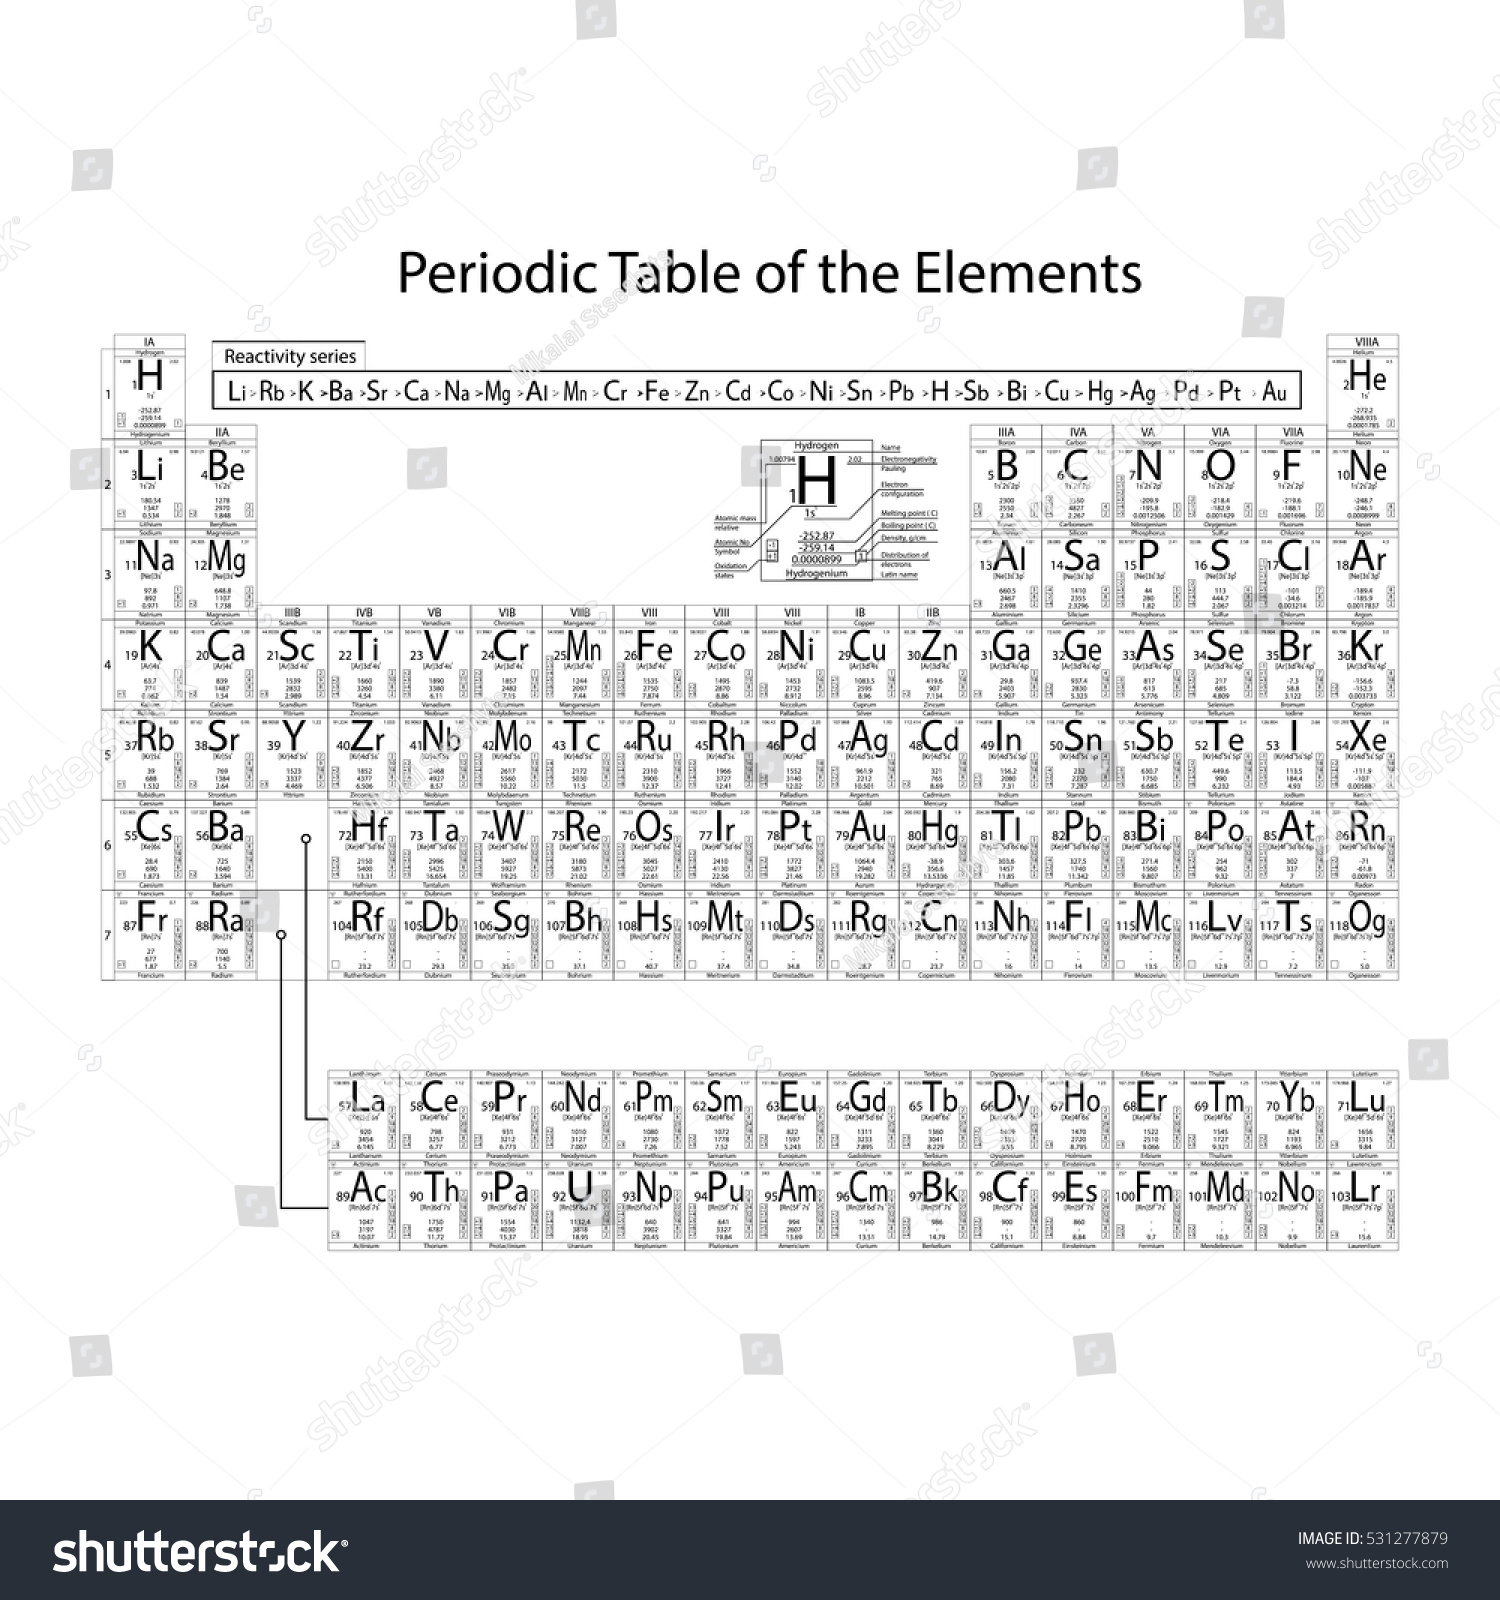 Periodic table elements atomic number symbol stock vector periodic table of the elements with atomic number symbol weight period oxidation gamestrikefo Image collections